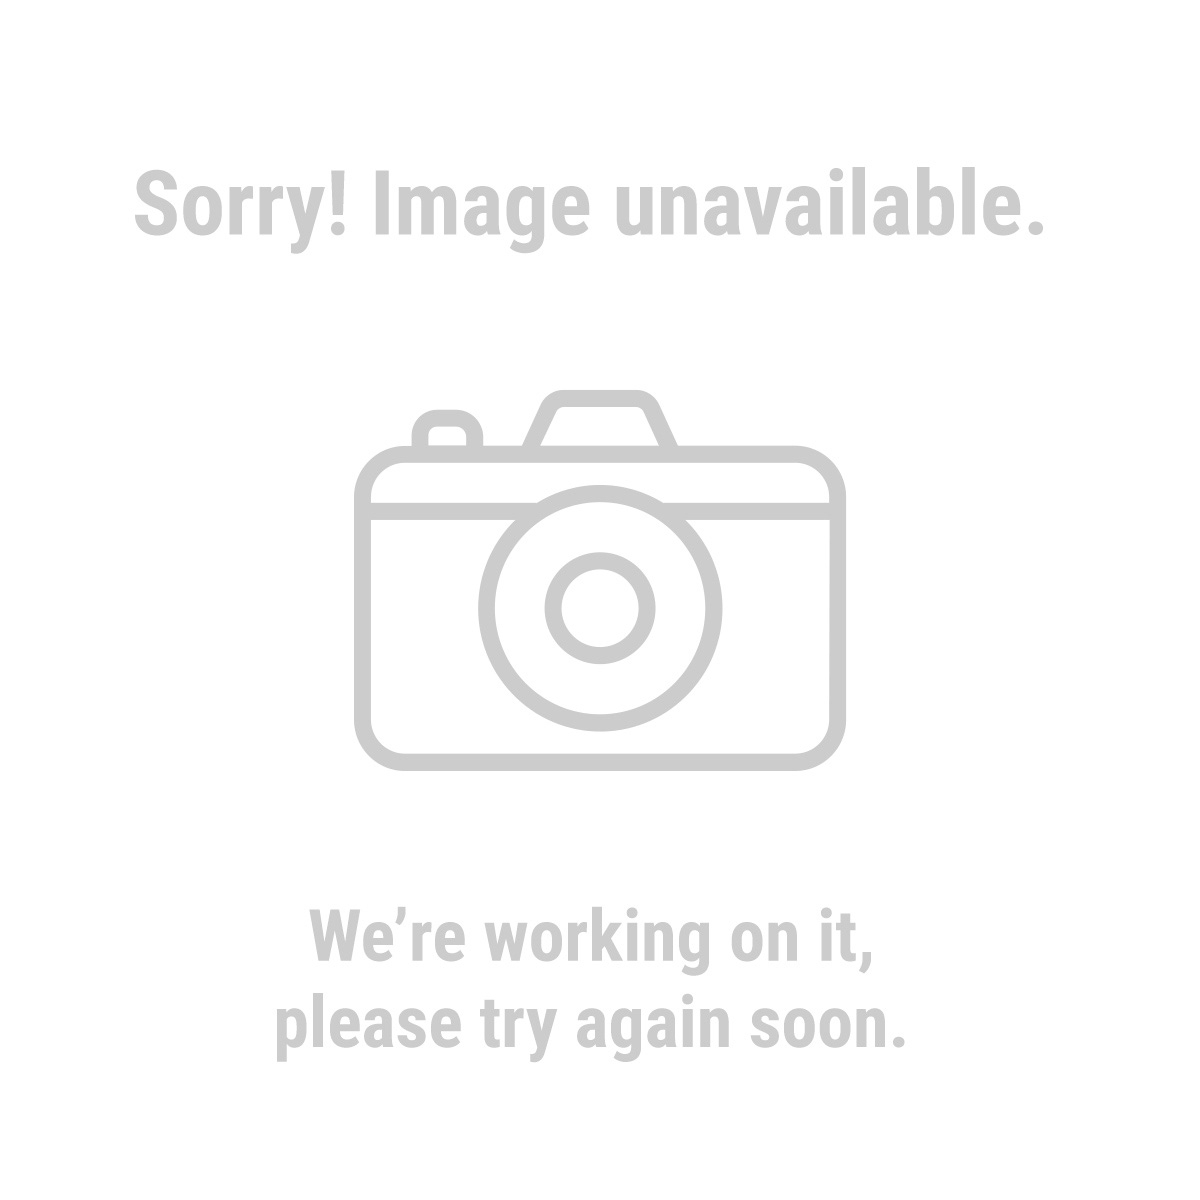 Western Safety 66291 5 Pair Black and Yellow Leather Work Gloves